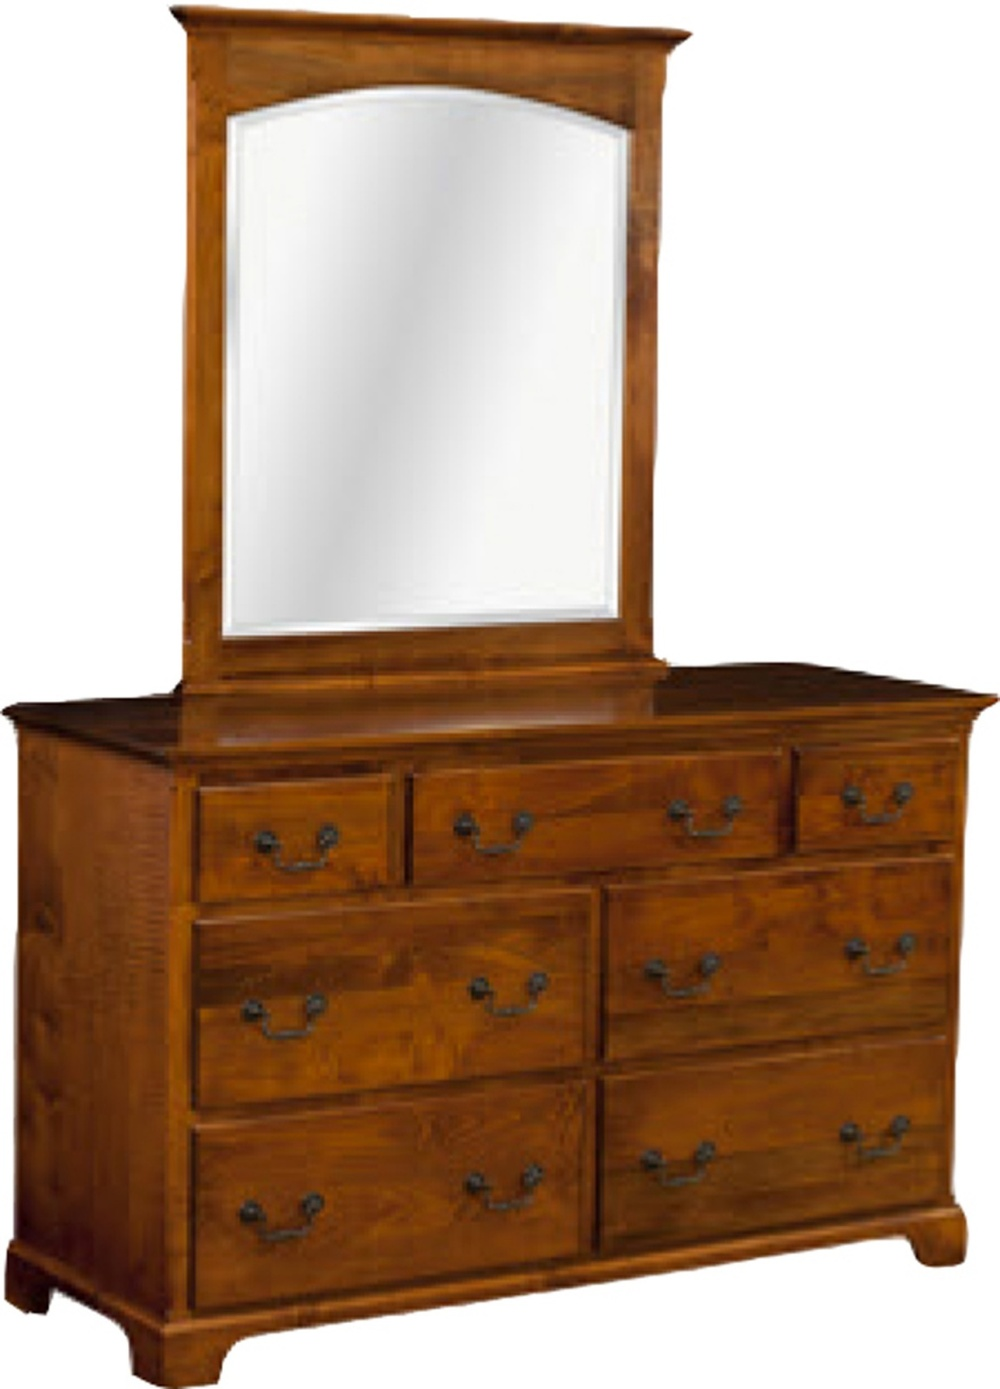 SO-163 58 Dresser with MI-64 Mirror.jpg